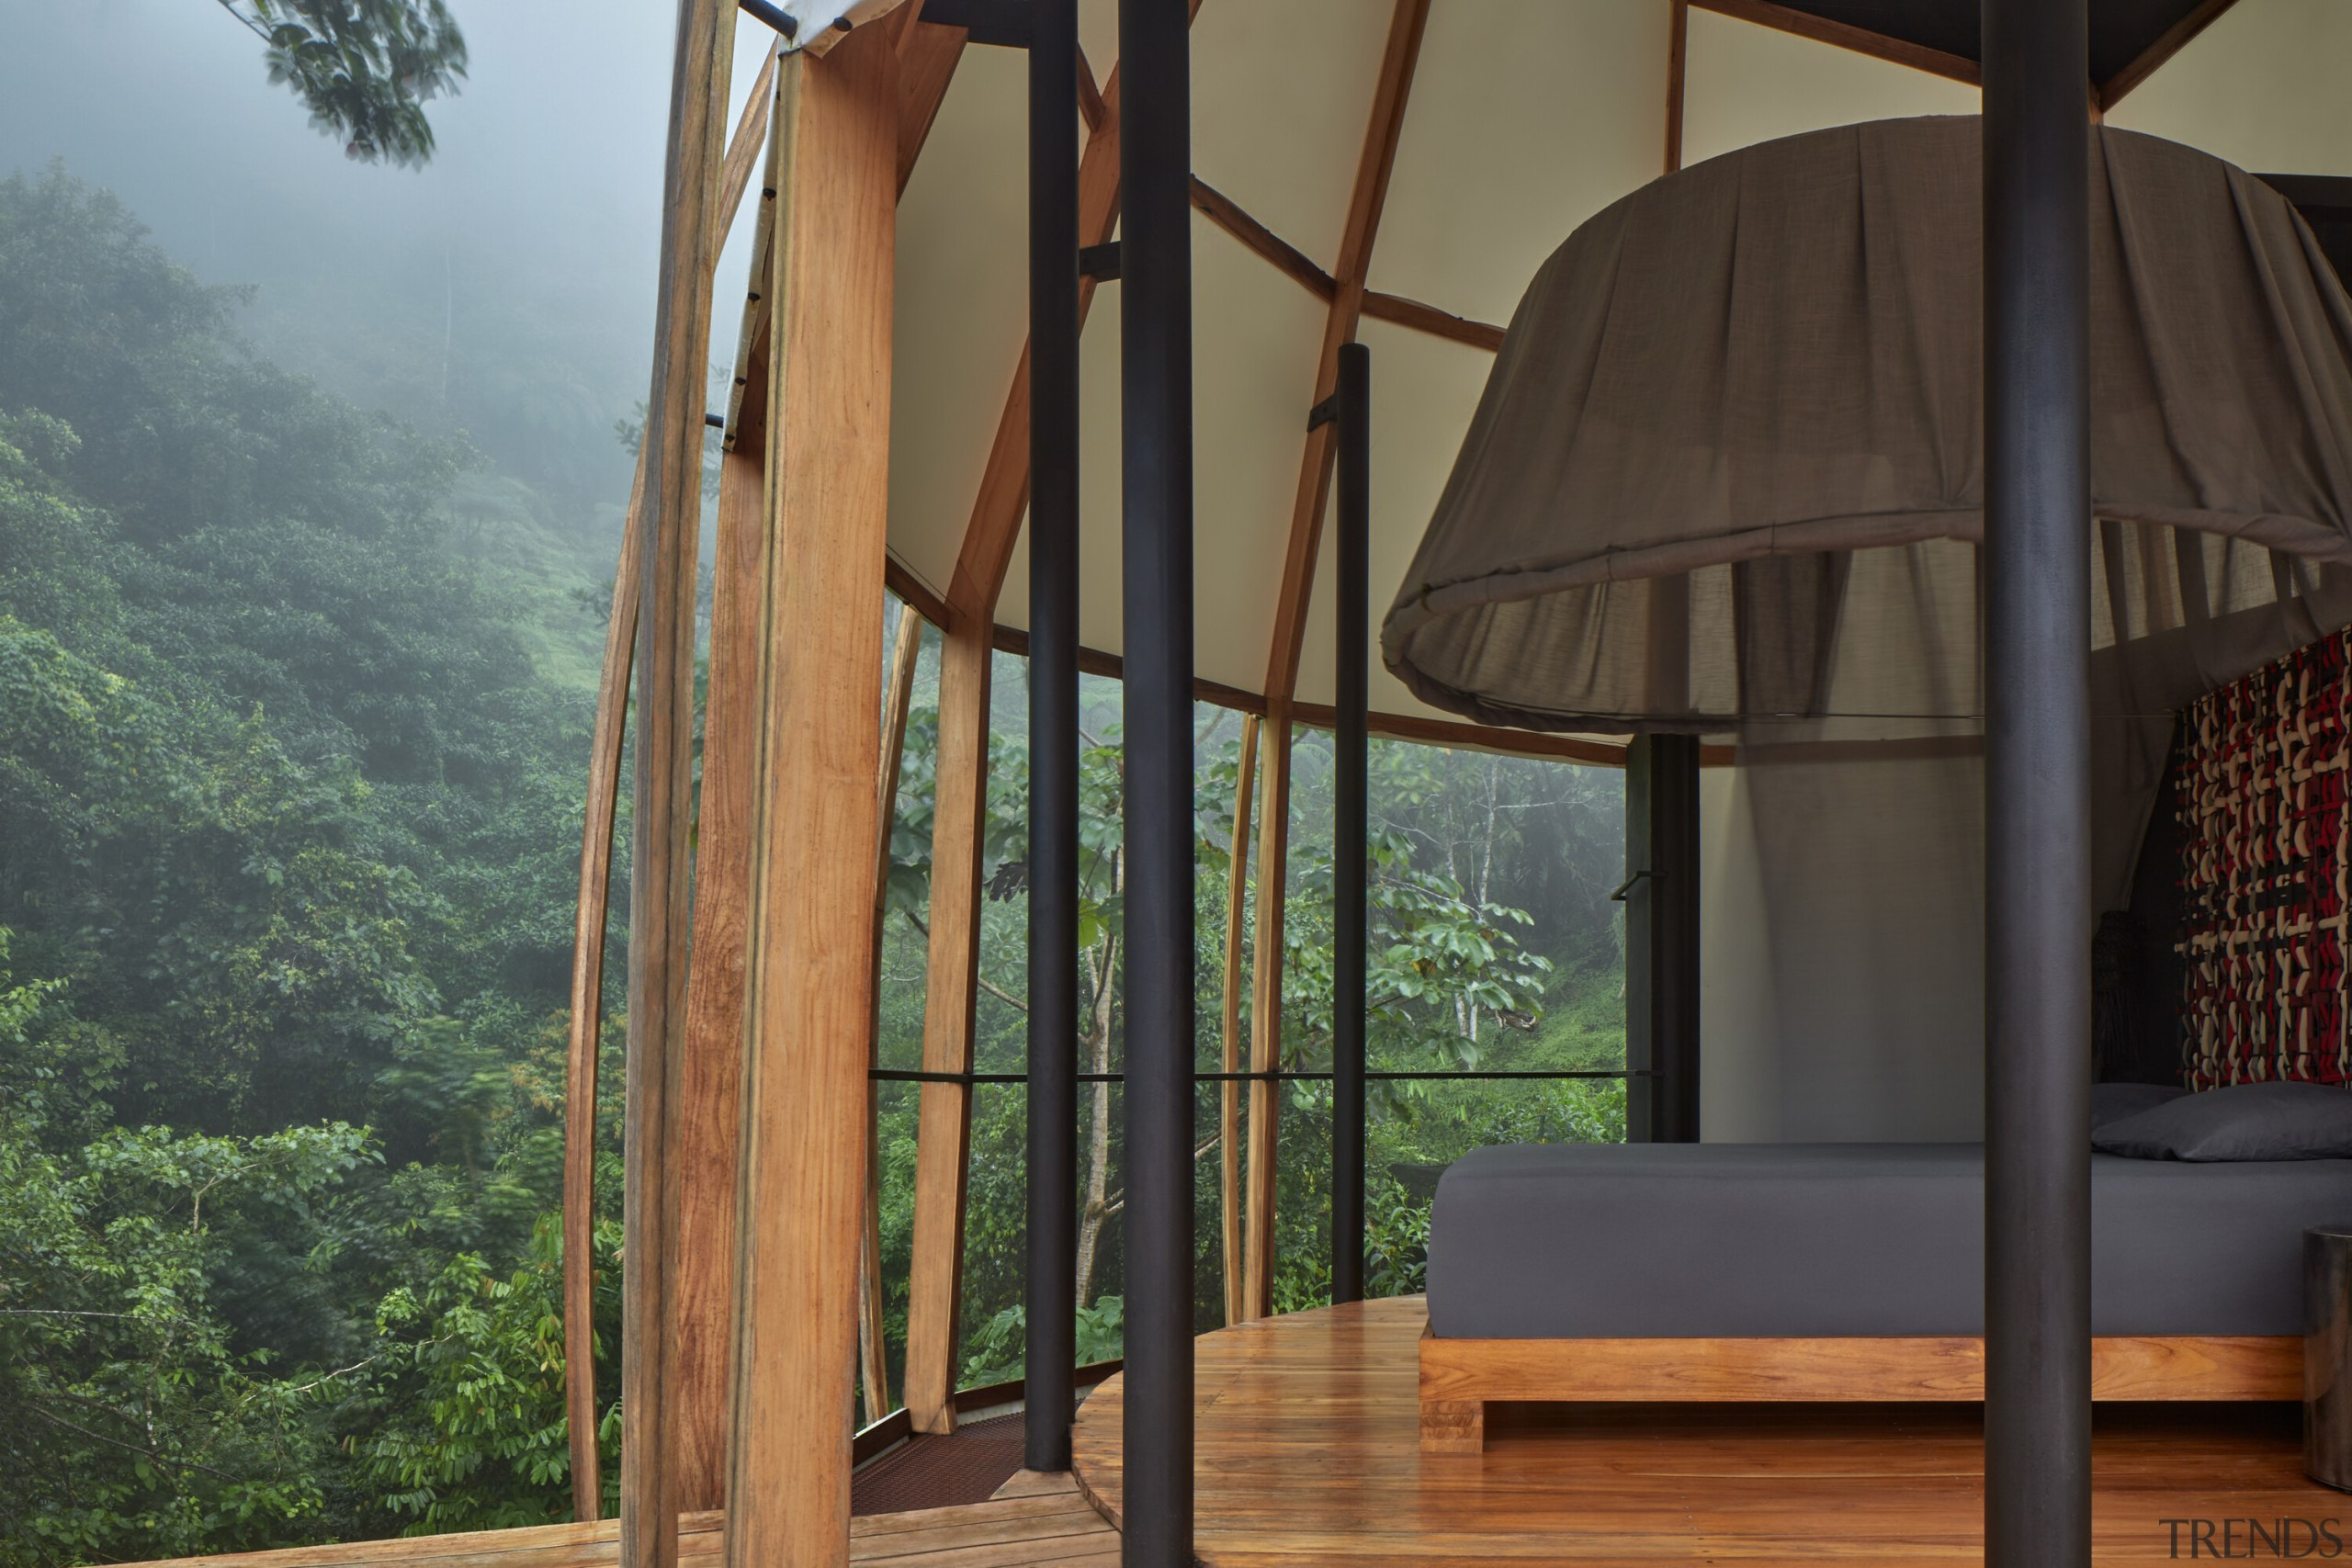 The mosquito net is the dominant element of